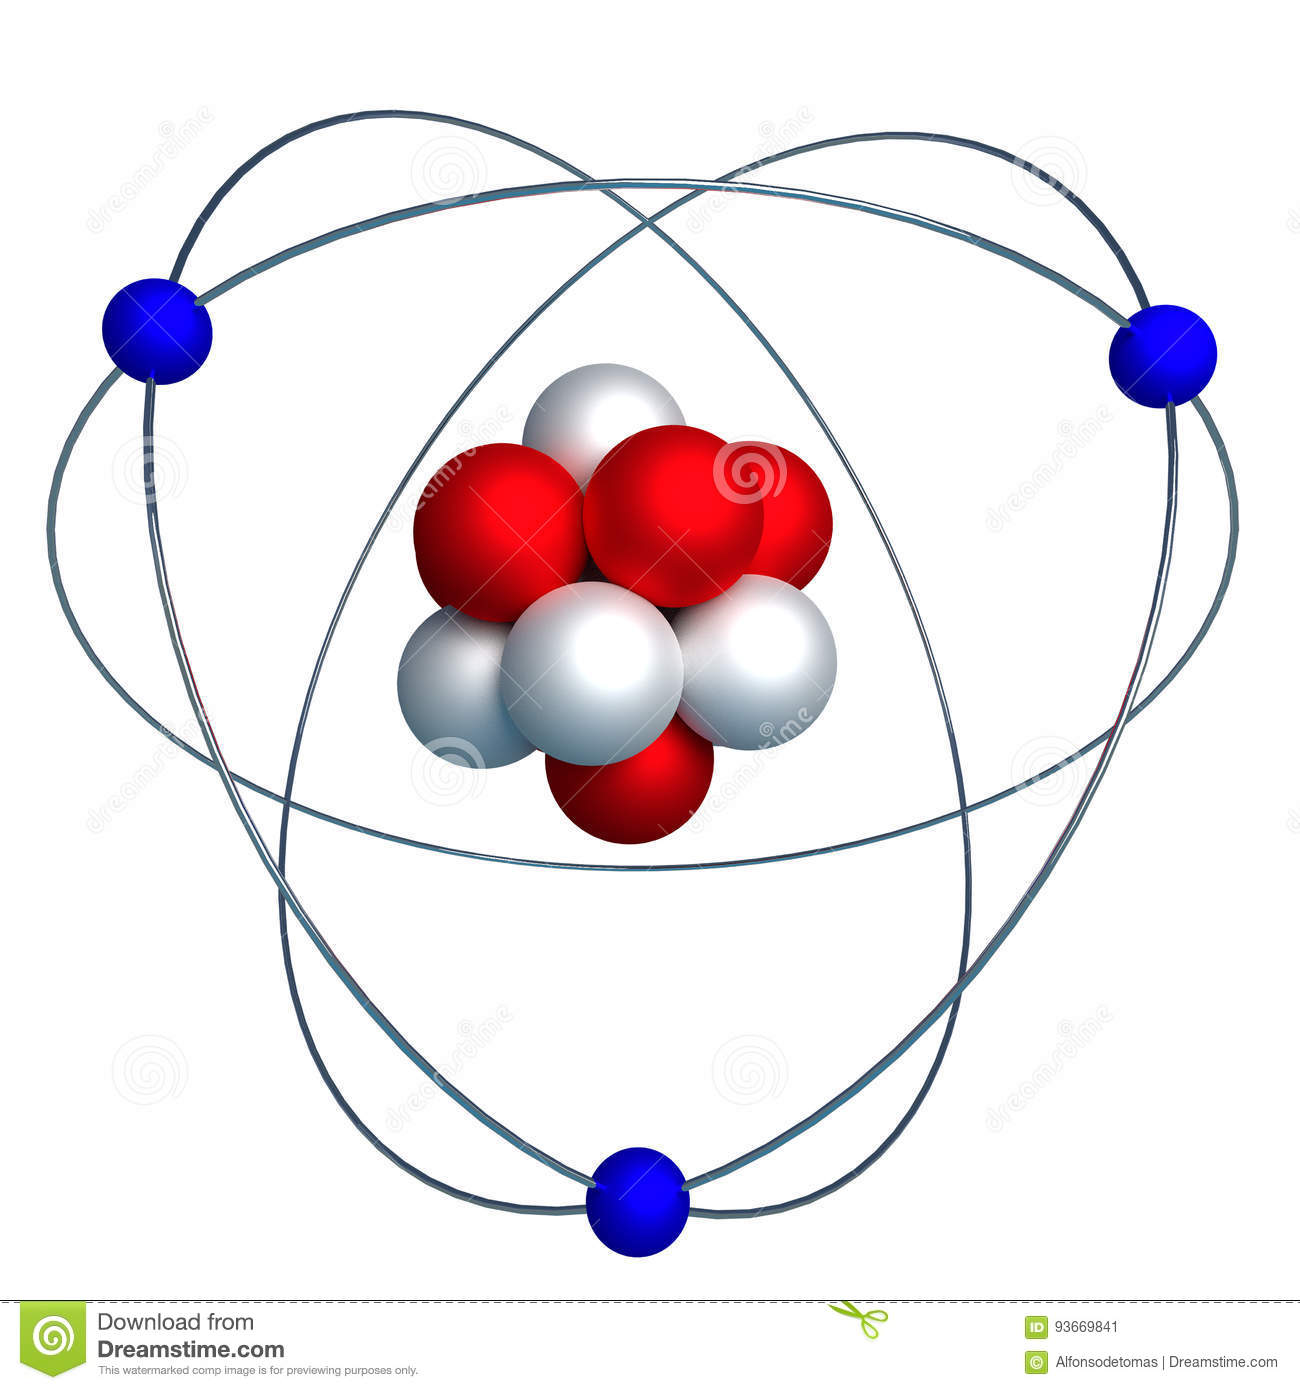 Atomic Structure With Proton Neutron And Electron